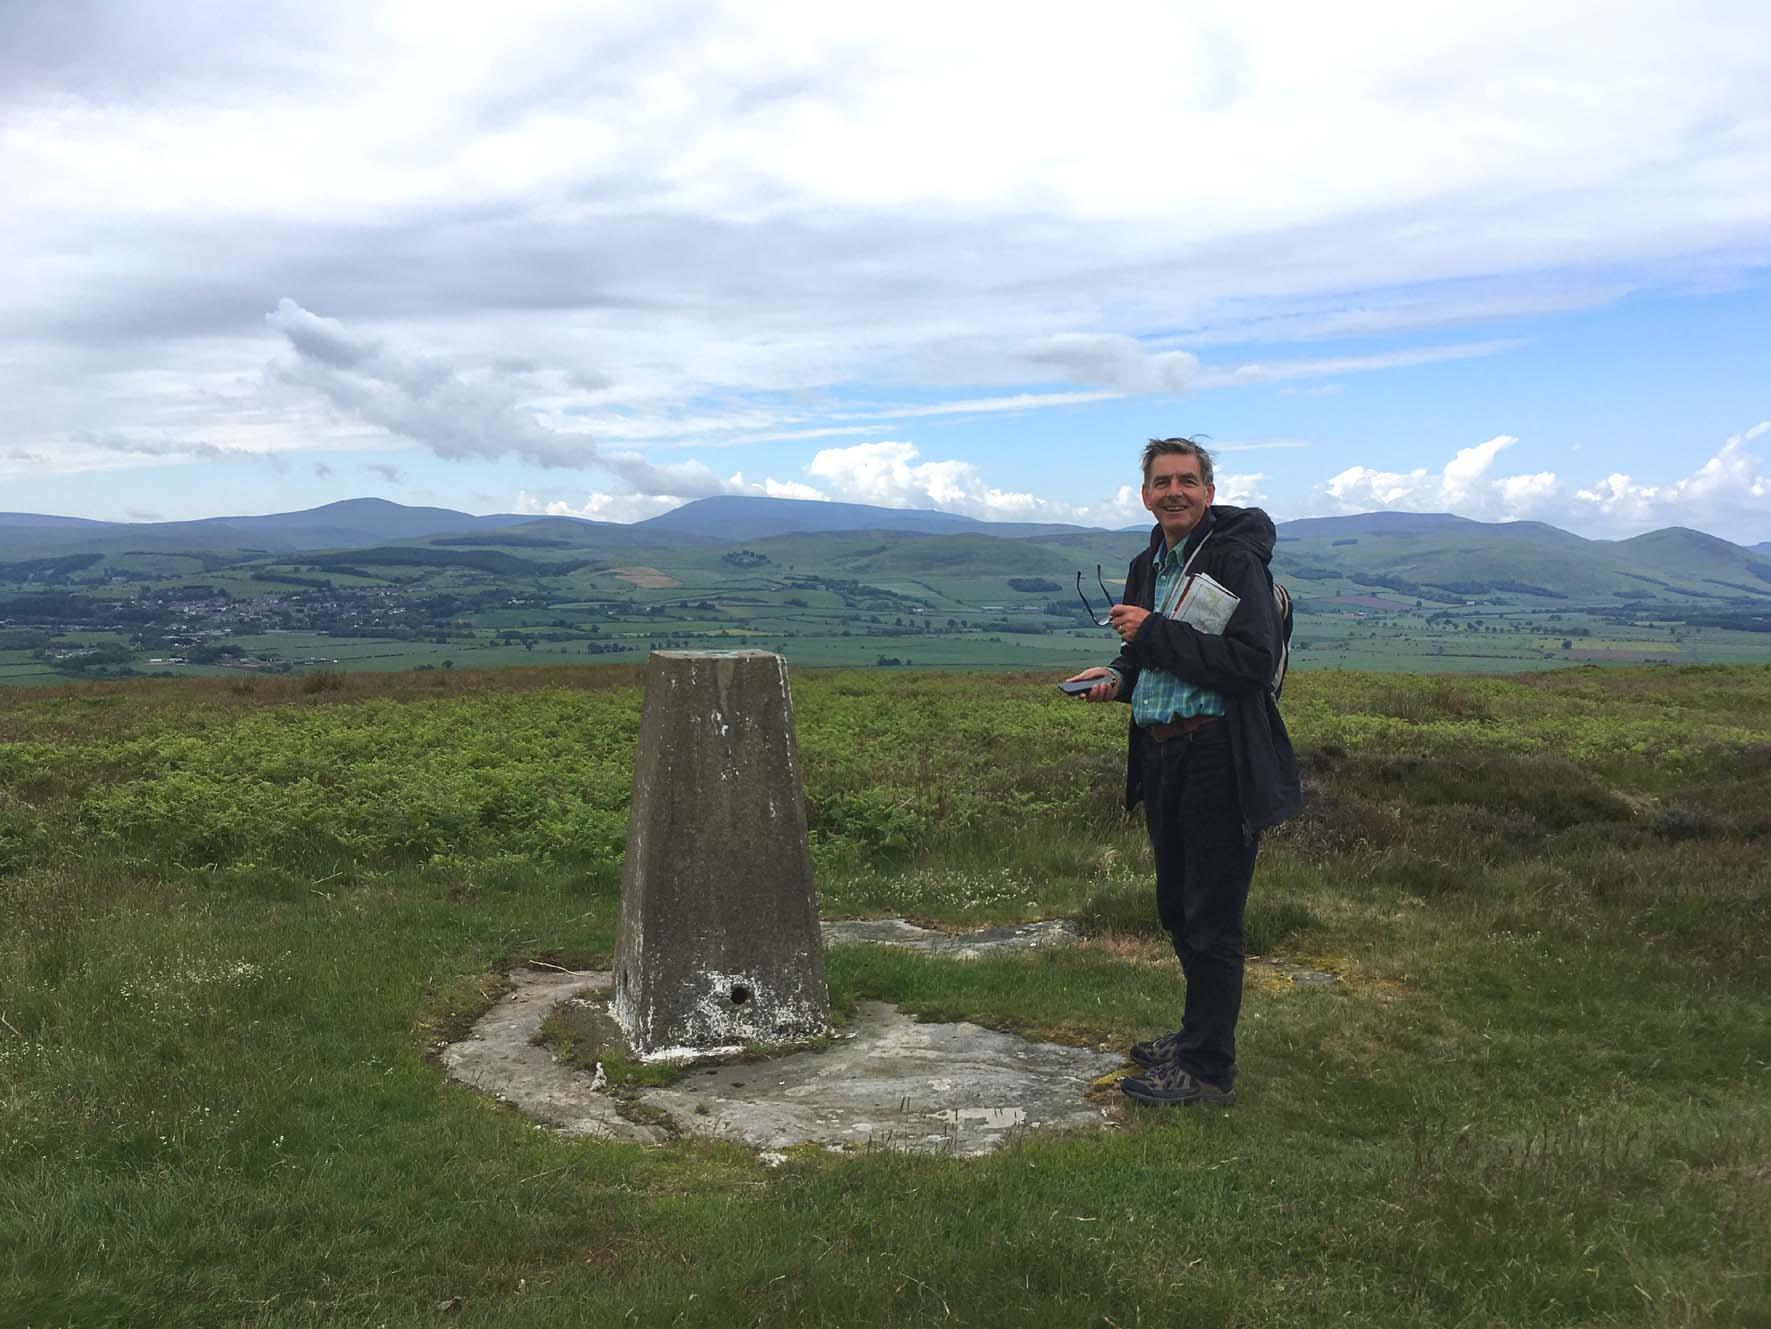 Stephen at the trig point